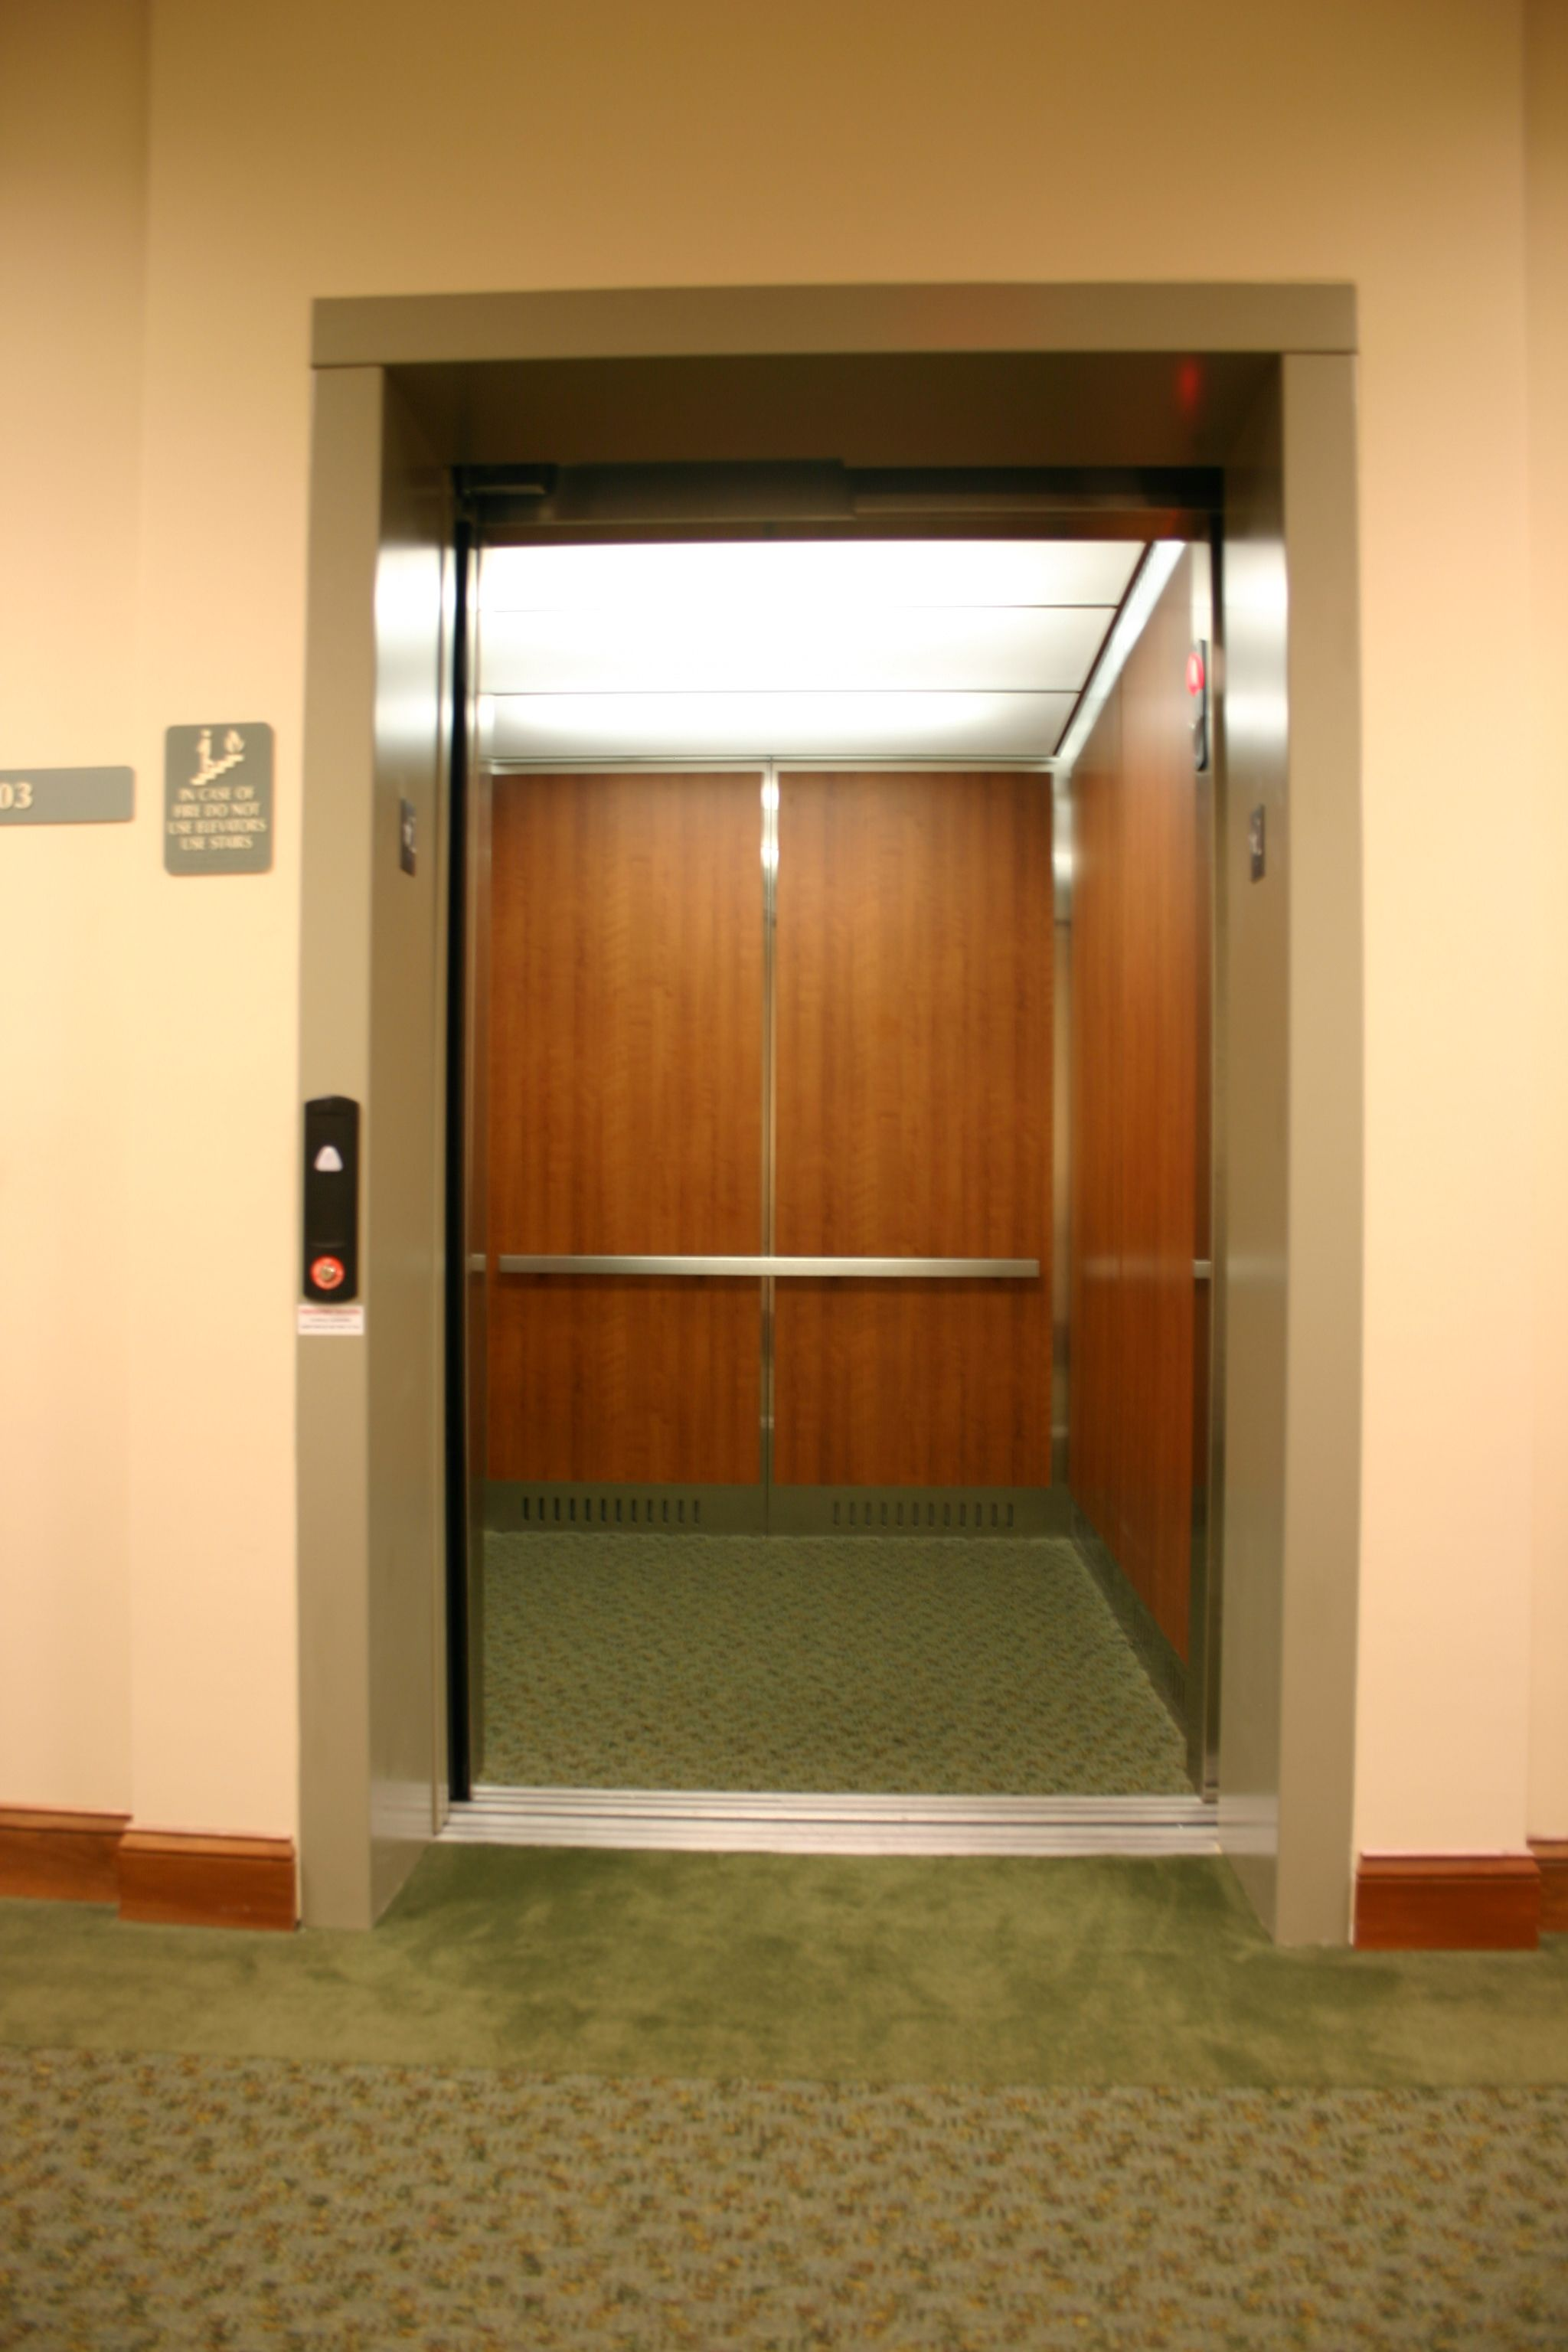 Home elevators prices - Elevator Light Lenses